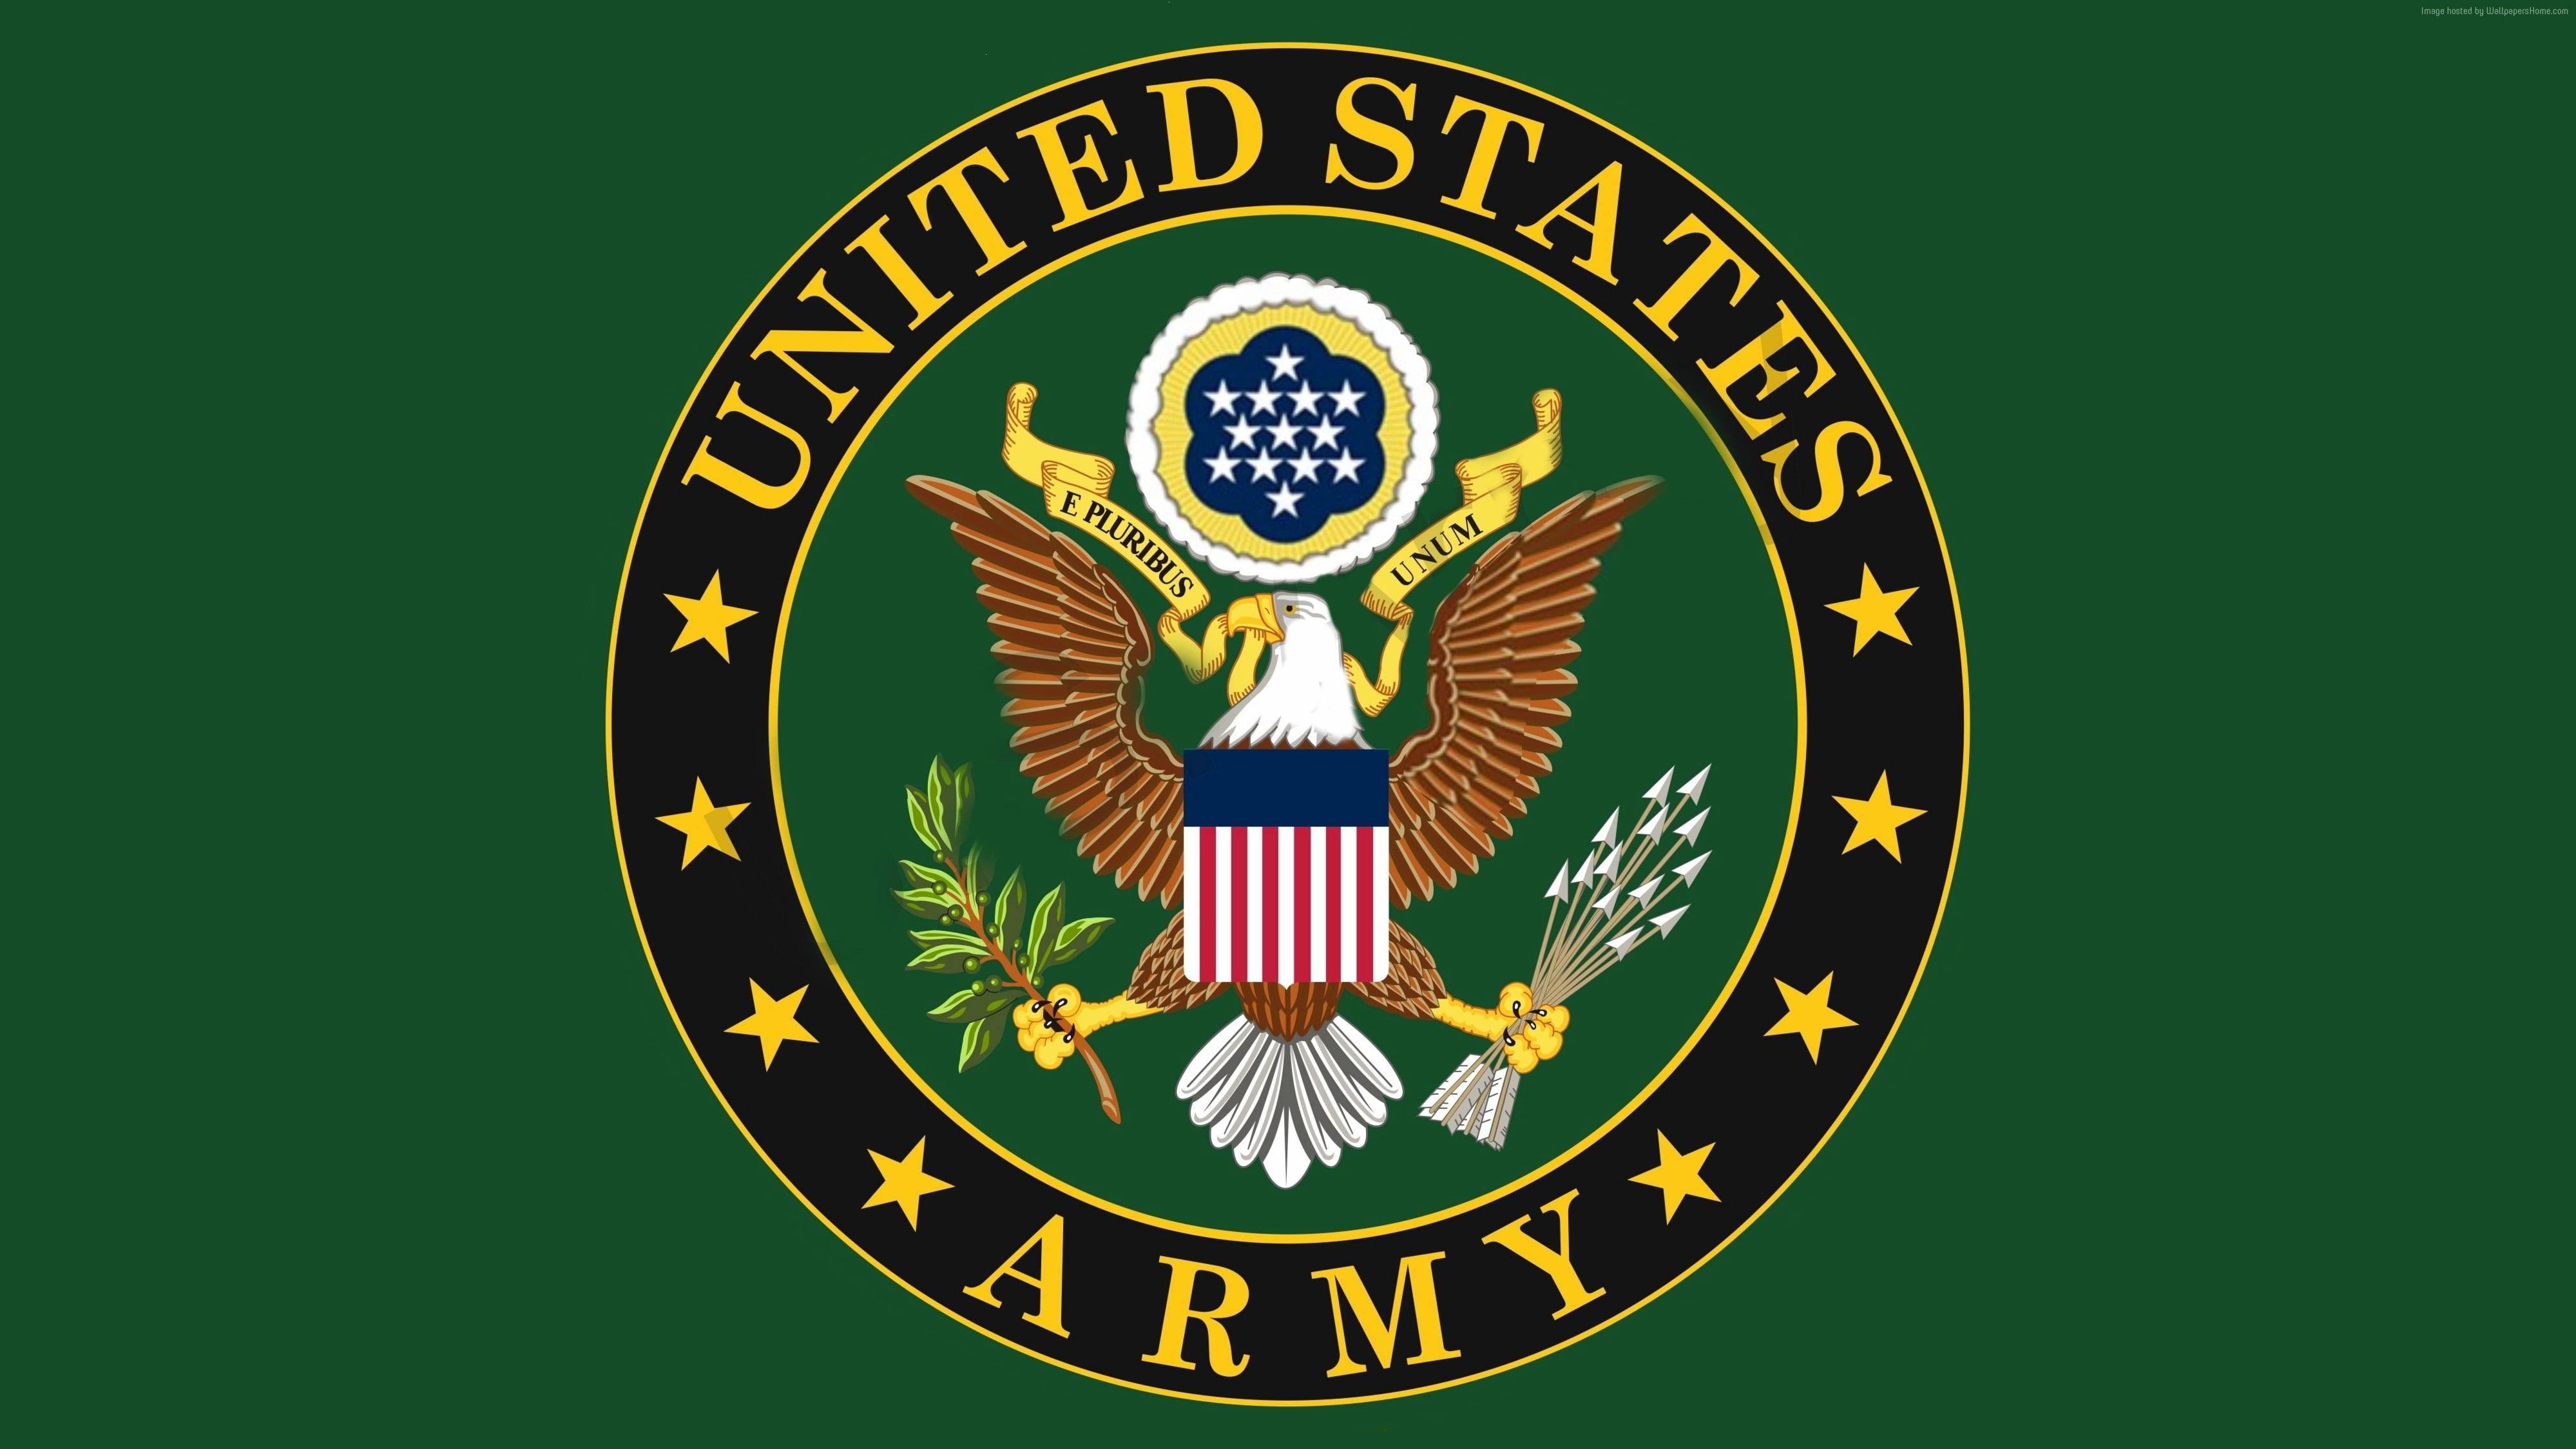 Iphone 2g Wallpaper United States Army Logo Hd Wallpaper Wallpaper Flare